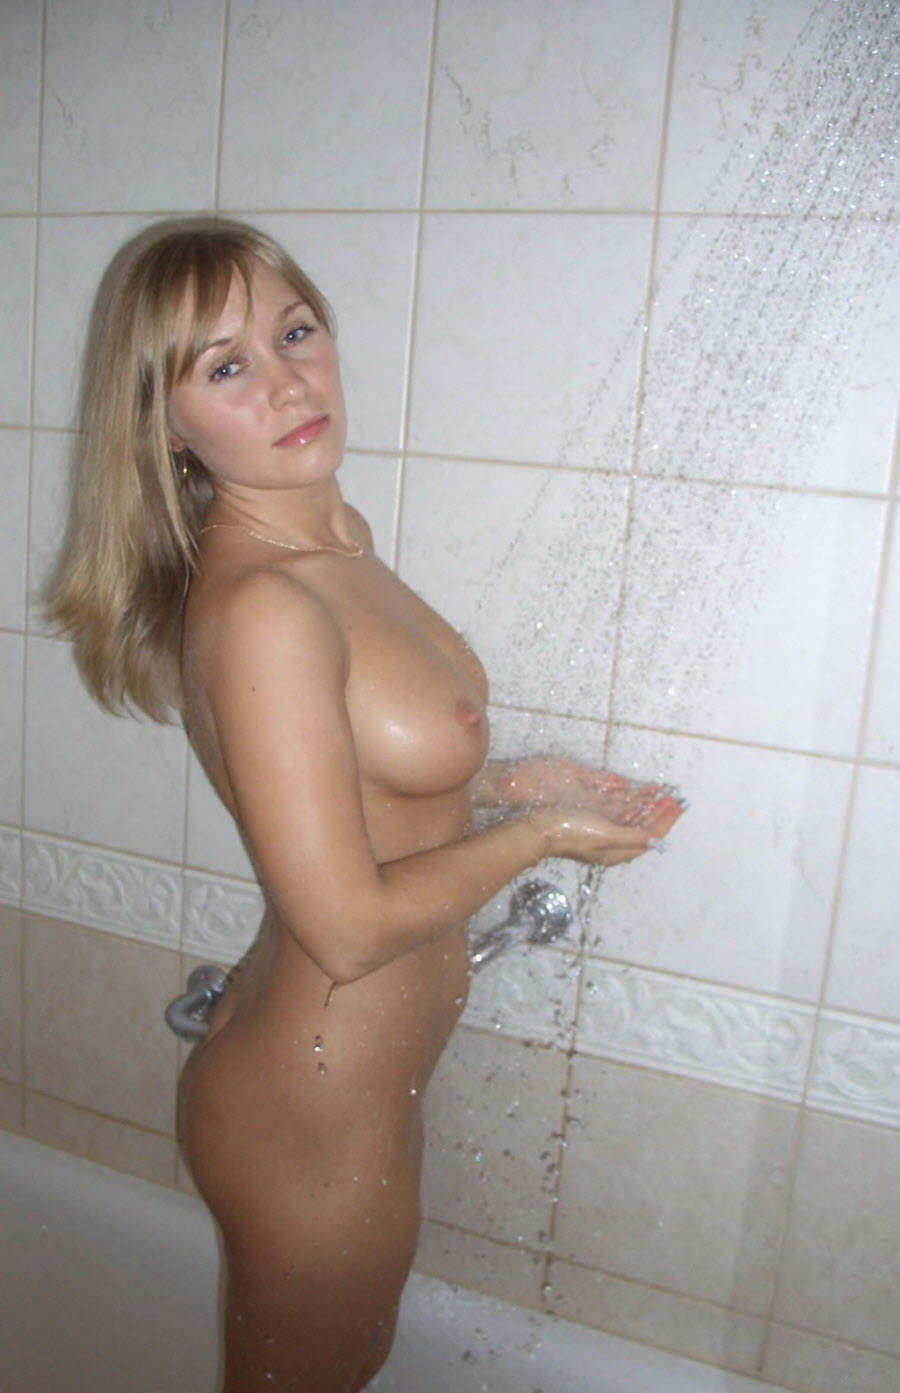 My wife nude in shower right!